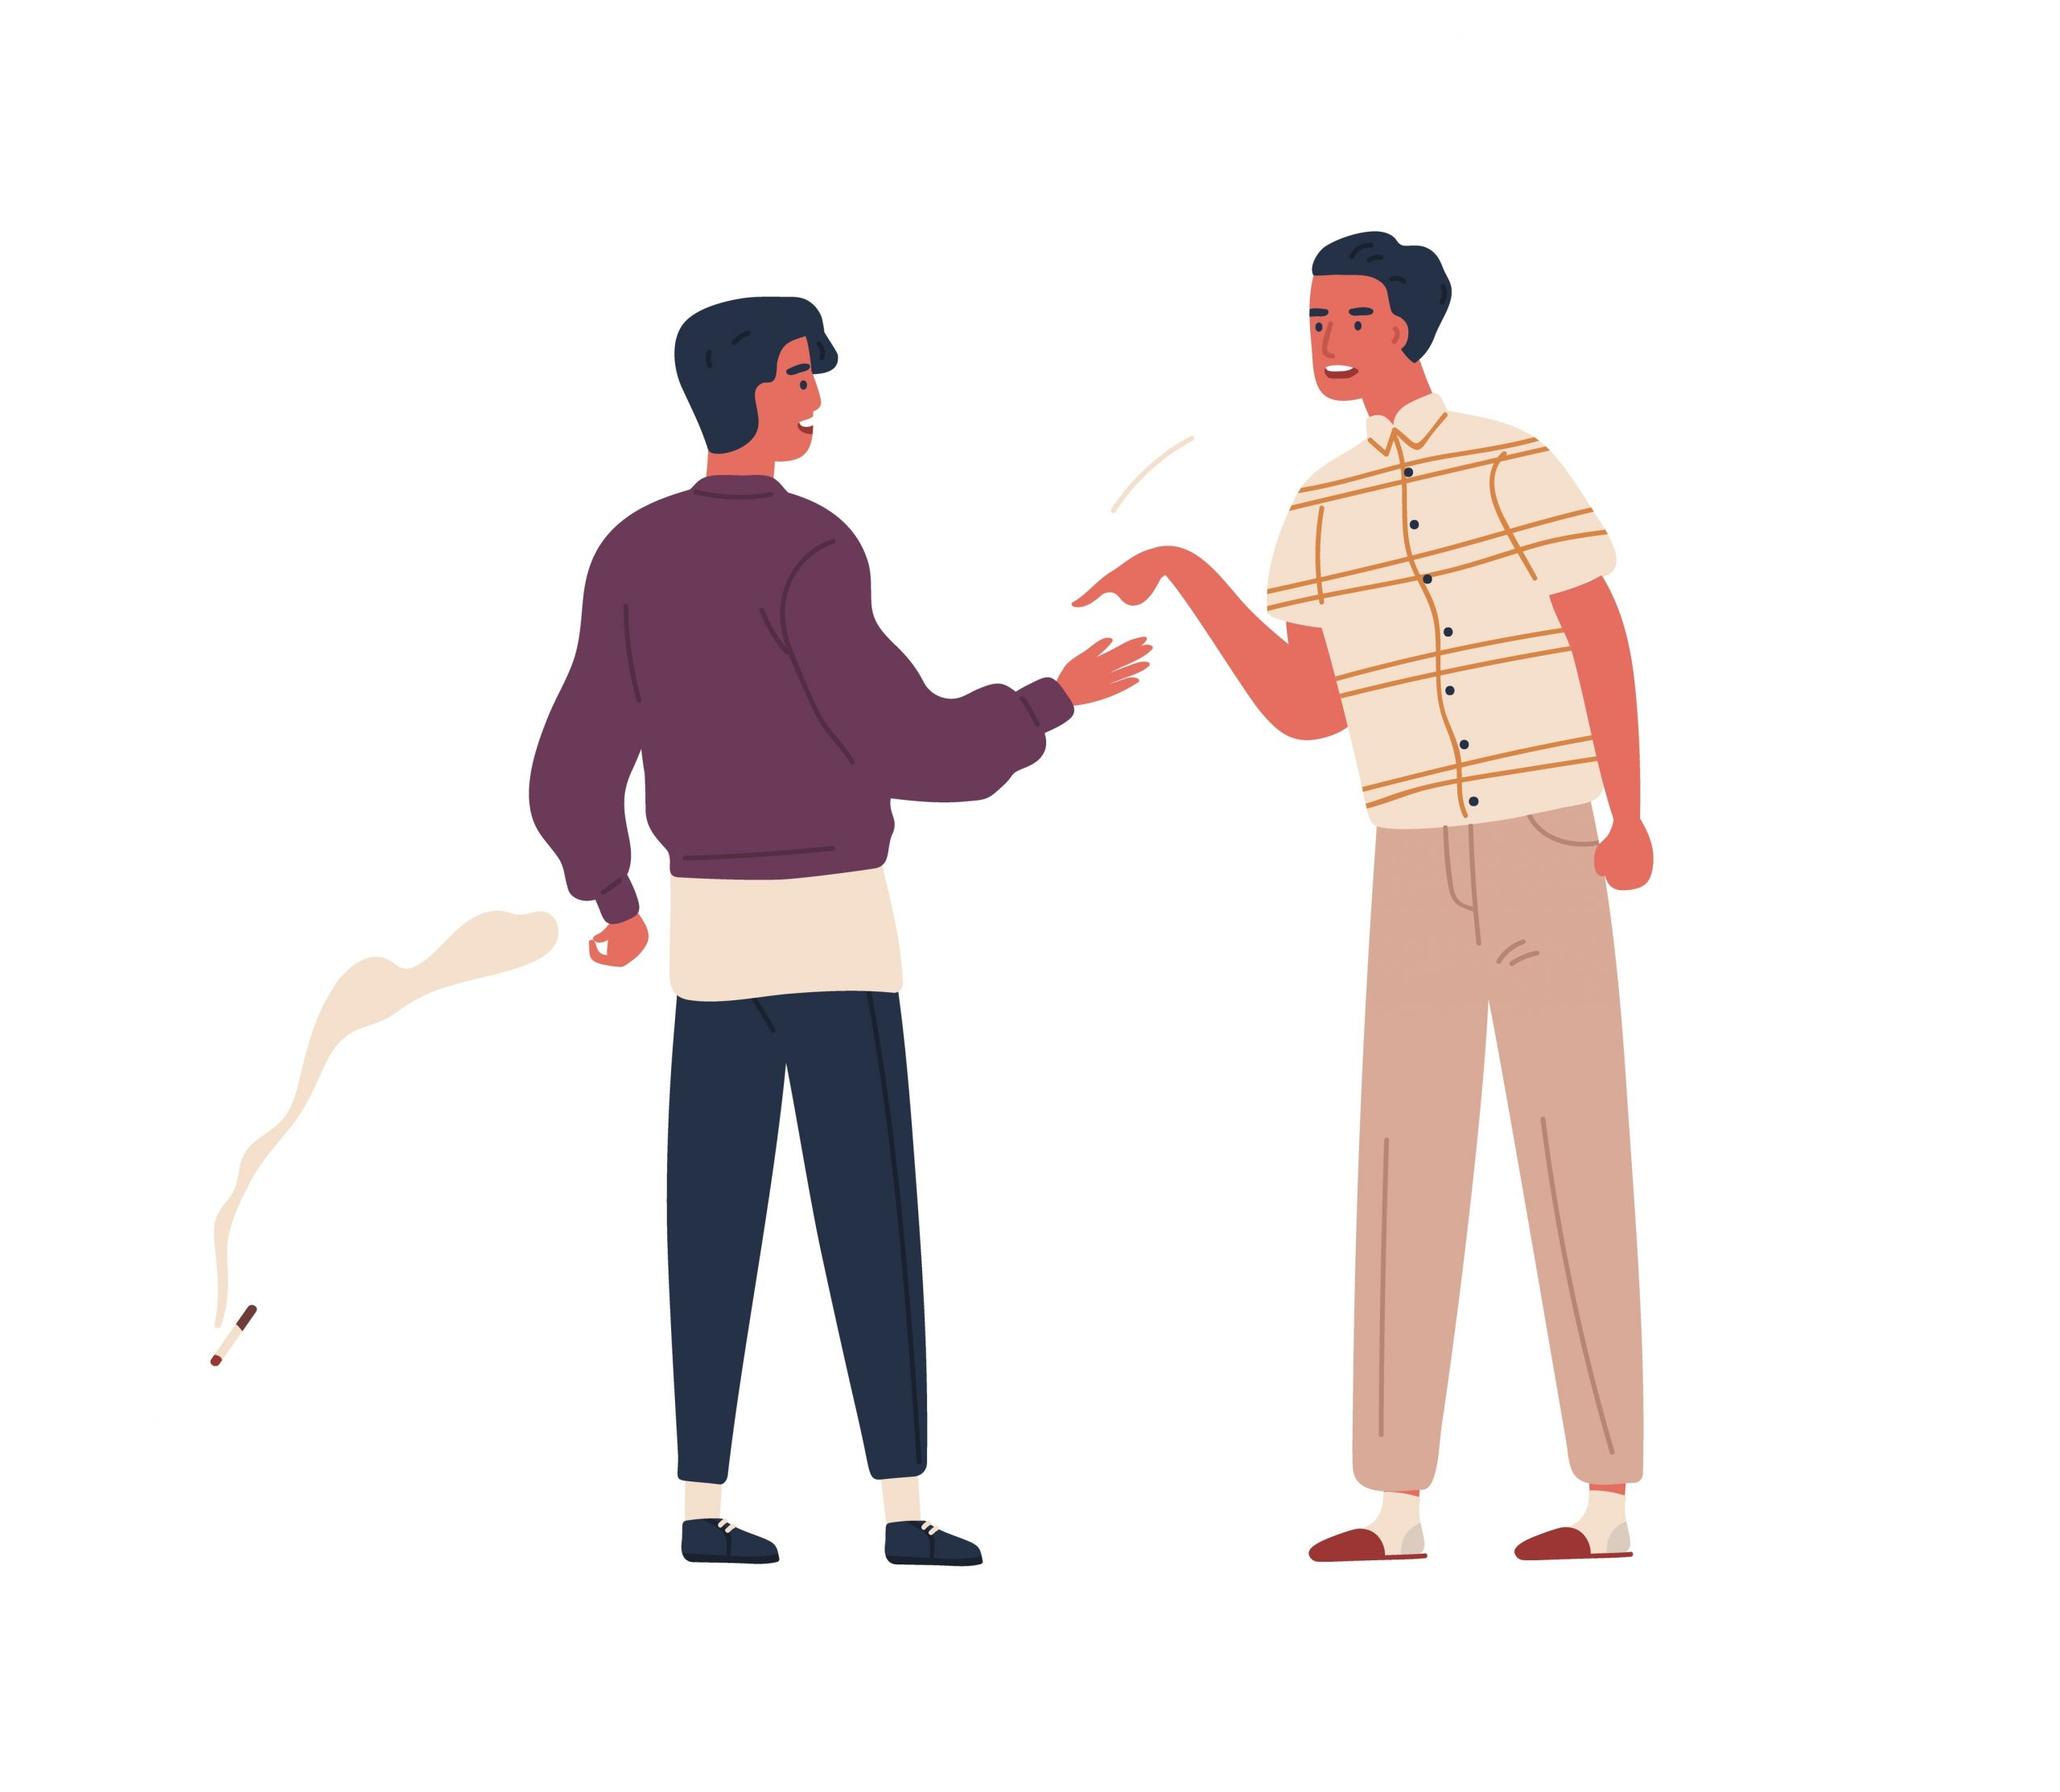 Furious father scold teenager son to smoking cigarette vector flat illustration. Dispute between angry dad and smoker adolescent guy isolated on white background. Male teen and parent conflict